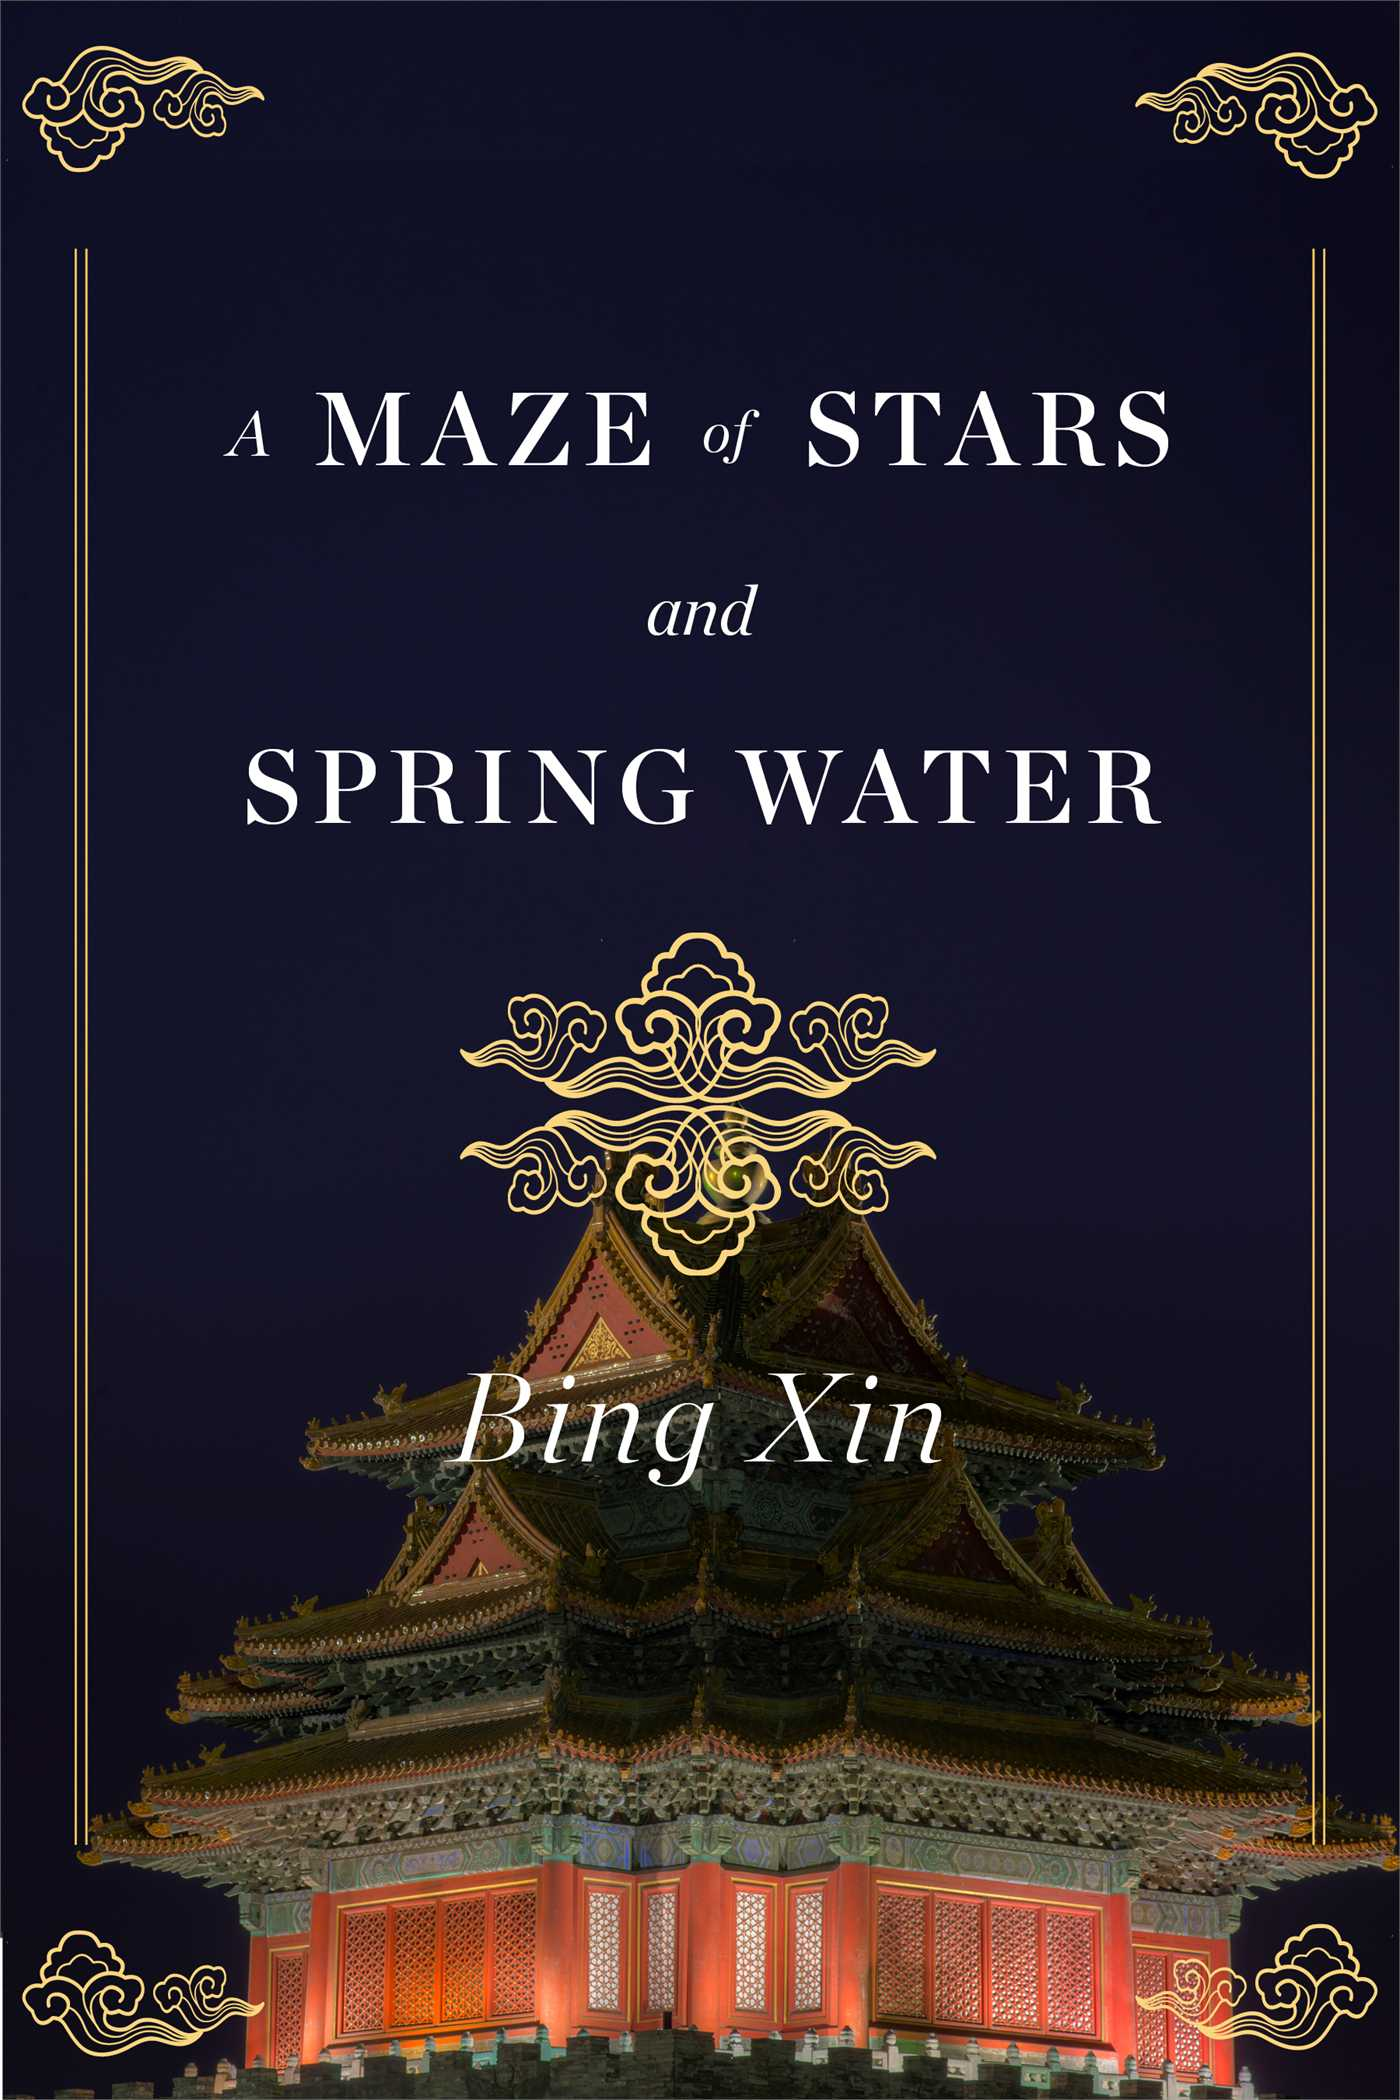 Maze-of-stars-and-spring-water-9781476774978_hr